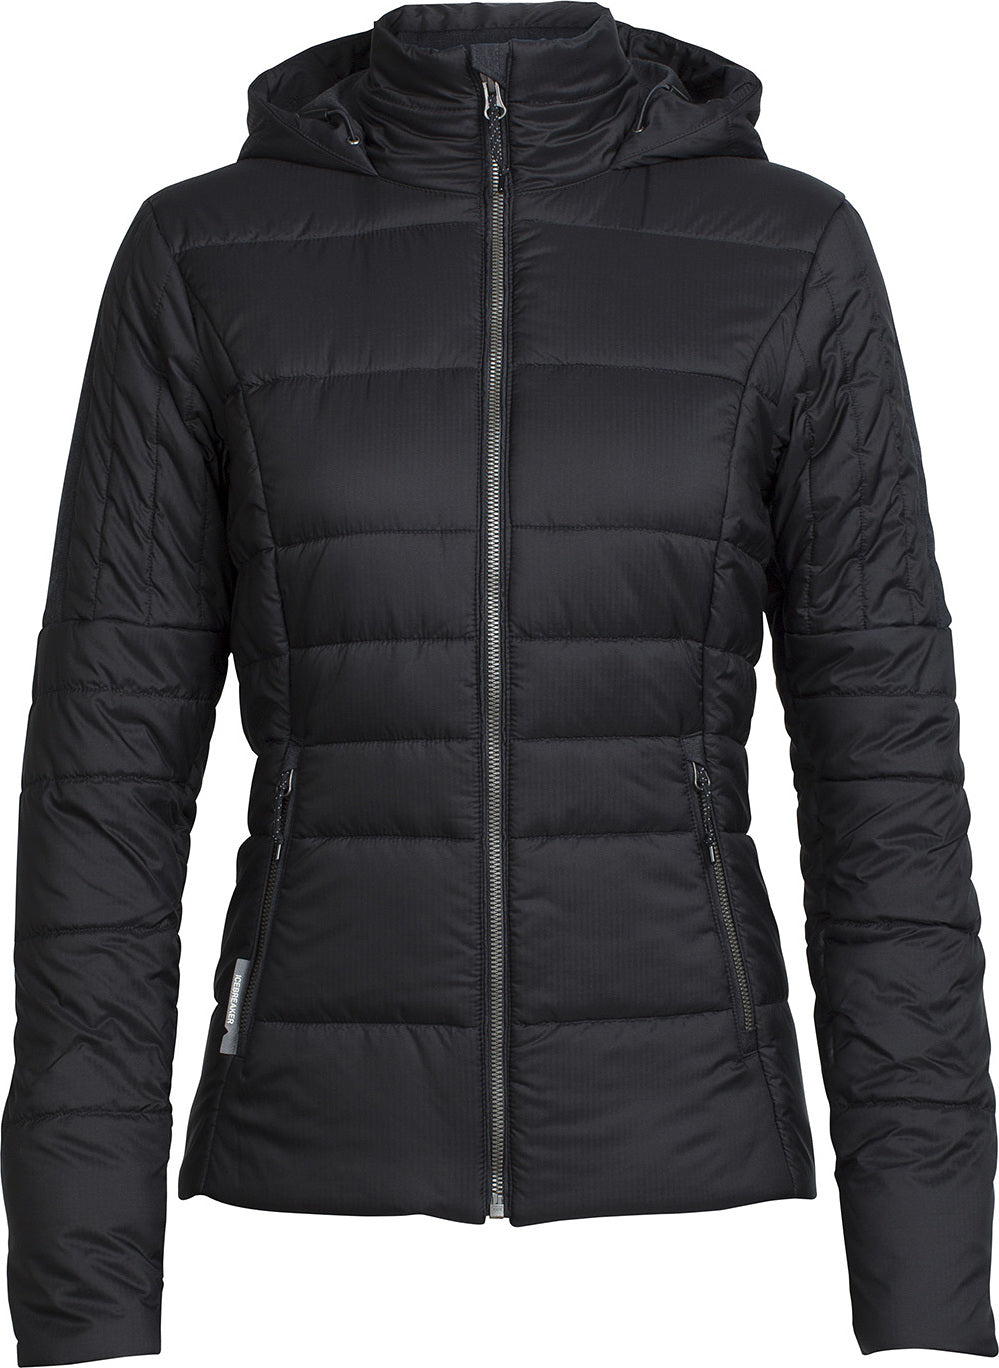 0b94f1b8be Icebreaker Stratus X Hooded Jacket - Women's | Altitude Sports